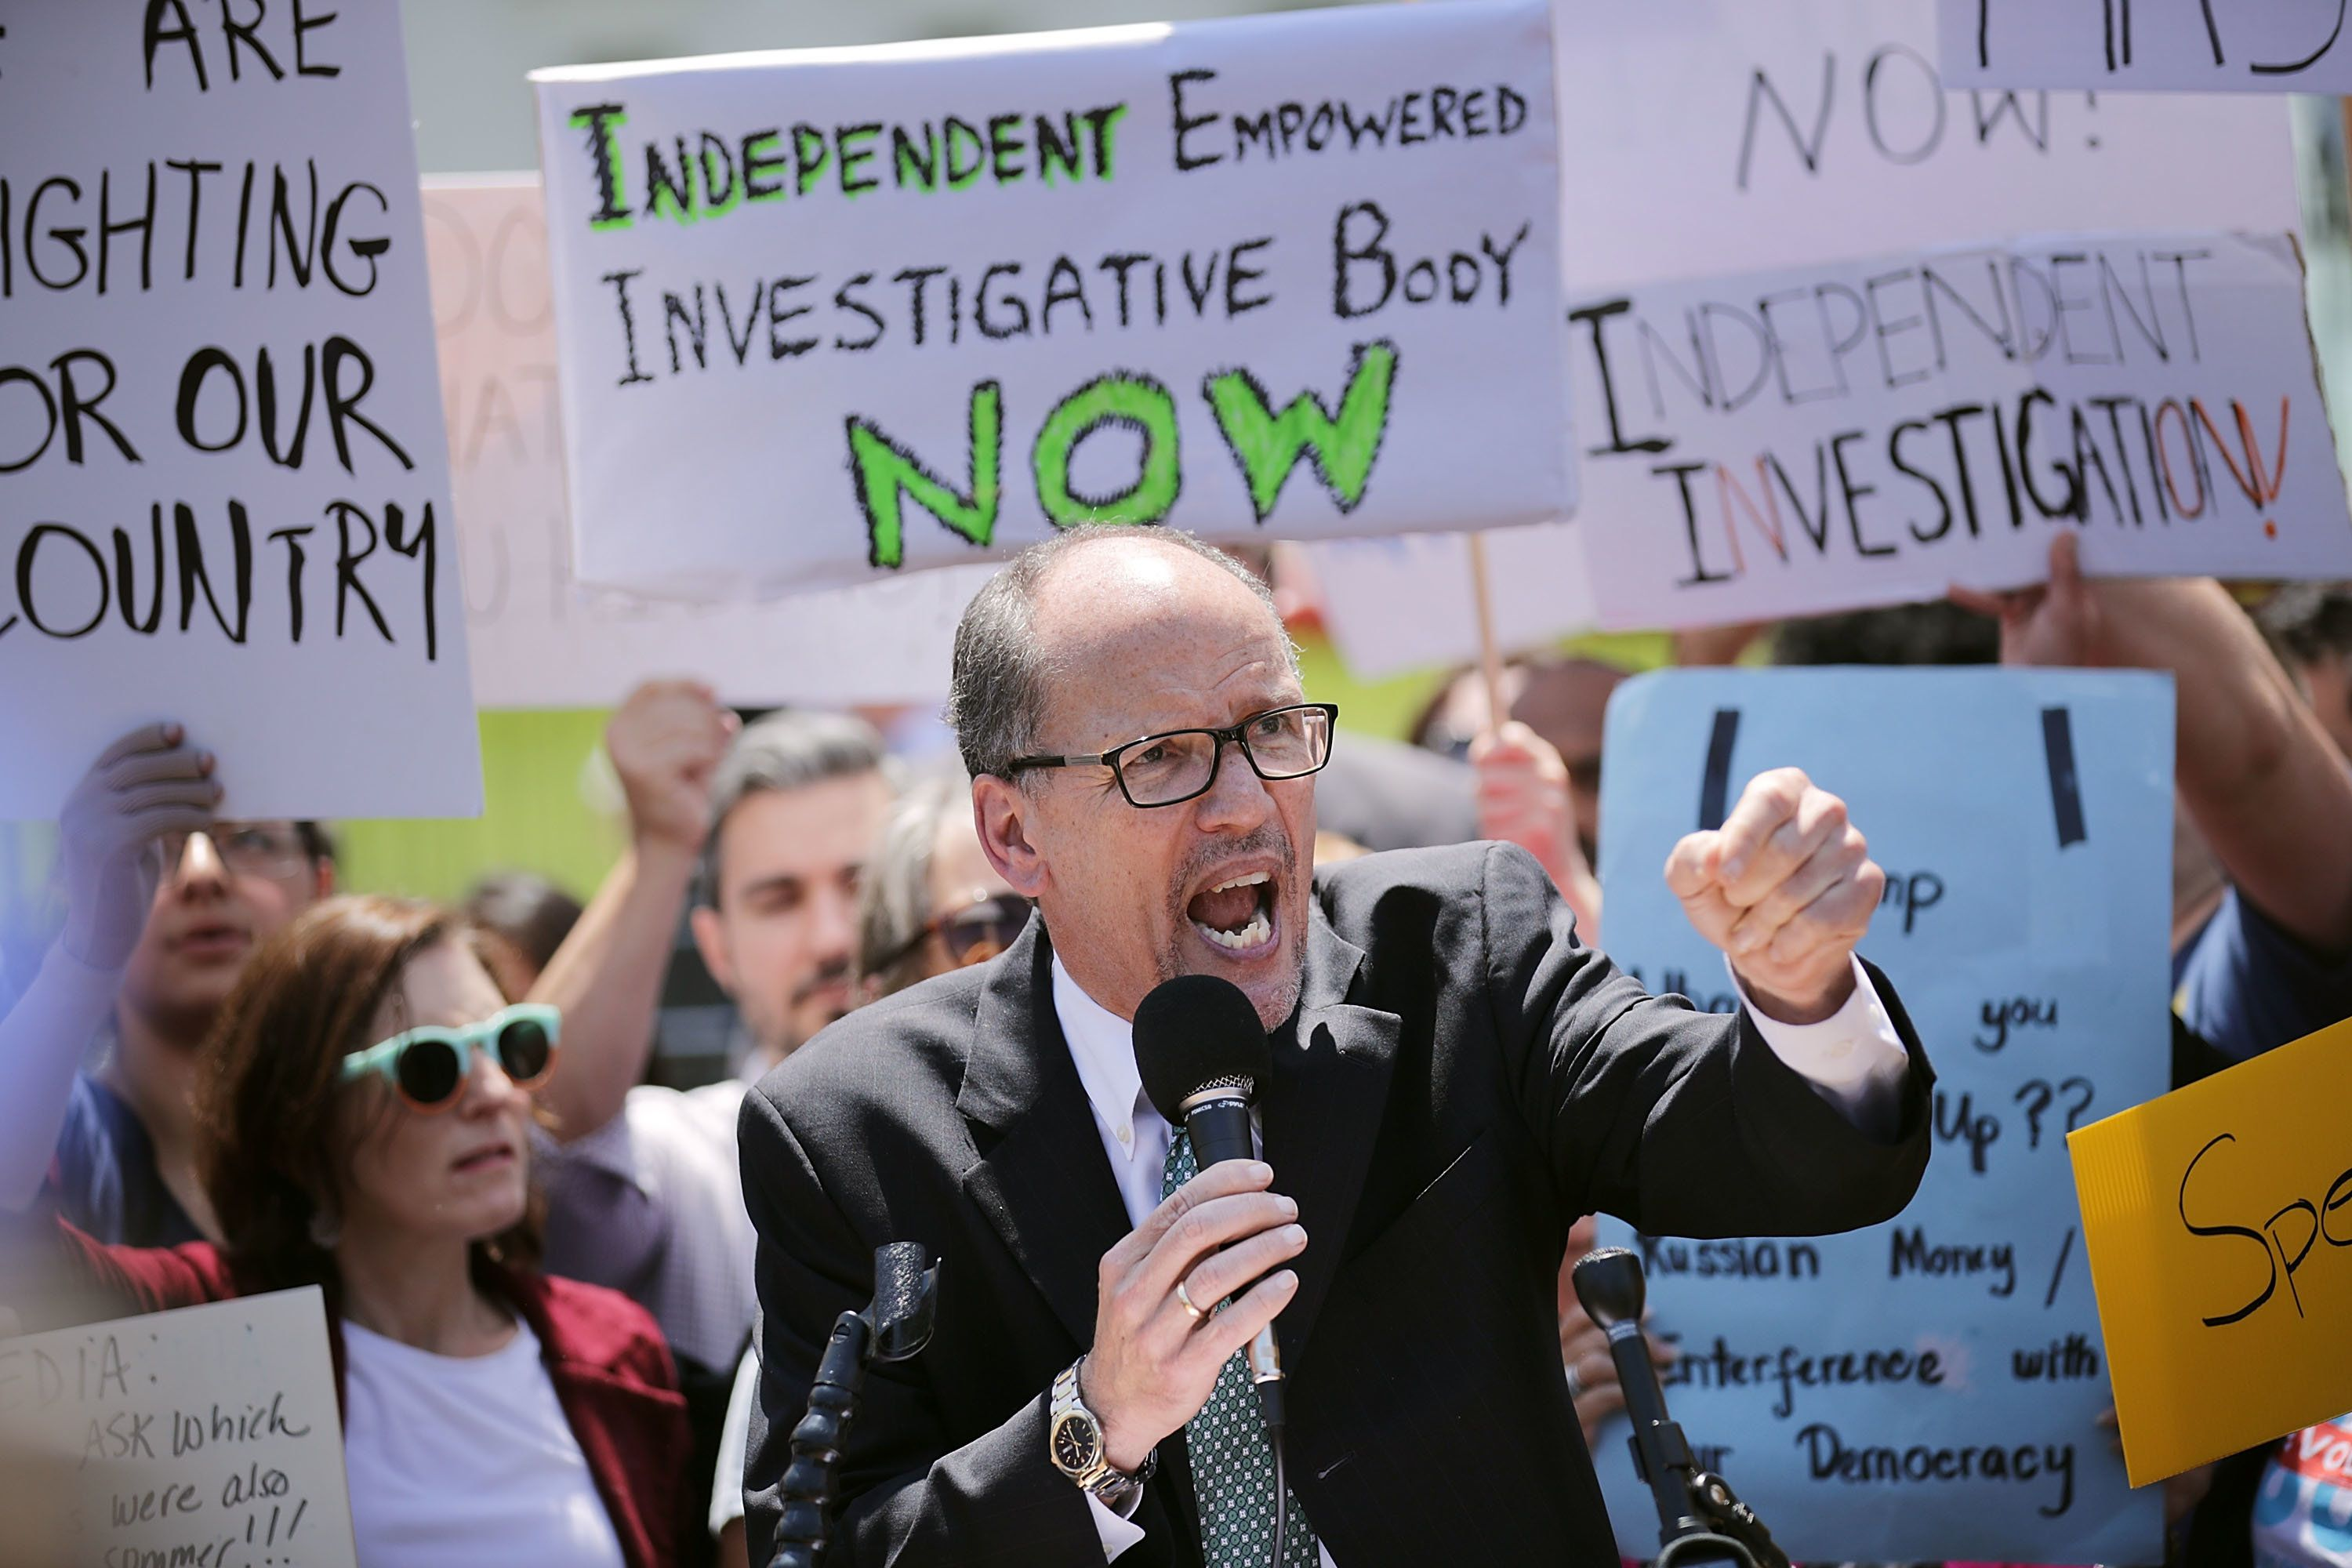 WASHINGTON, DC - MAY 10:  Democratic National Party Chirman Tom Perez speaks as people rally to protest against President Donald Trump's firing of Federal Bureau of Investigation Director James Comey outside the White House May 10, 2017 in Washington, DC. Trump fired Comey a day earlier, calling it the 'Tuesday Night Massacre,' recalling former President Richard Nixon's firing of a independent special prosecutor.   (Photo by Chip Somodevilla/Getty Images)